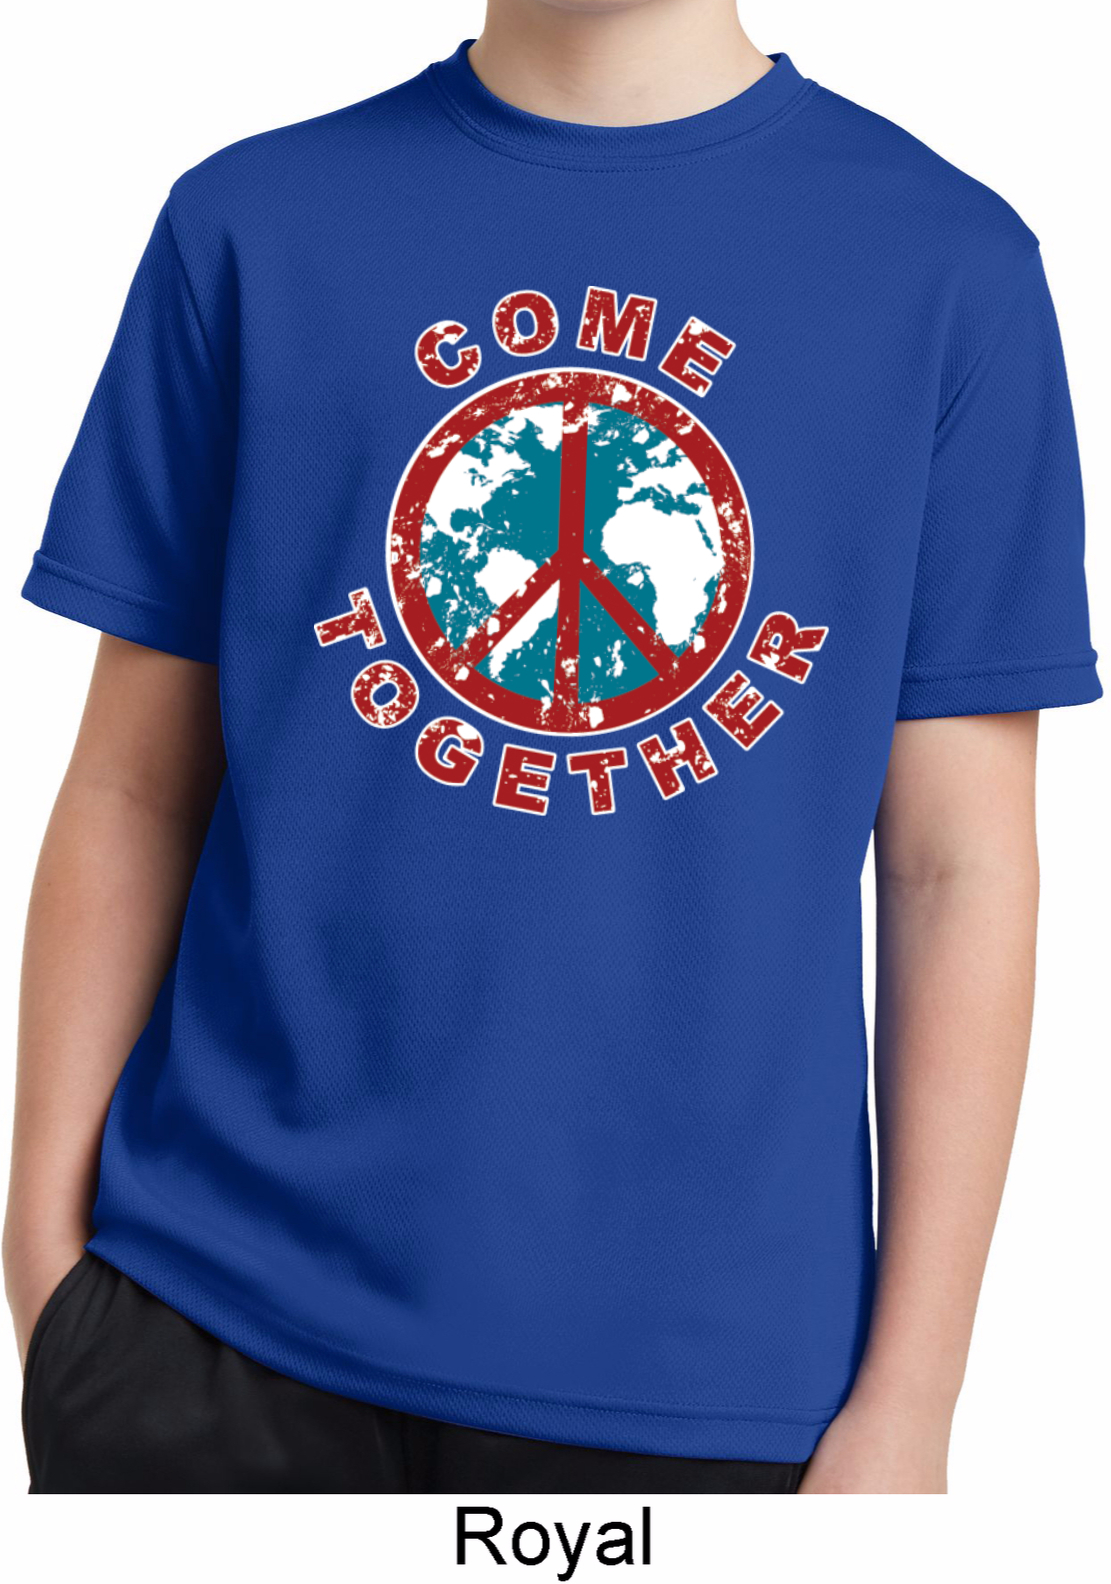 Come Together Kids Moisture Wicking Shirt Come Together